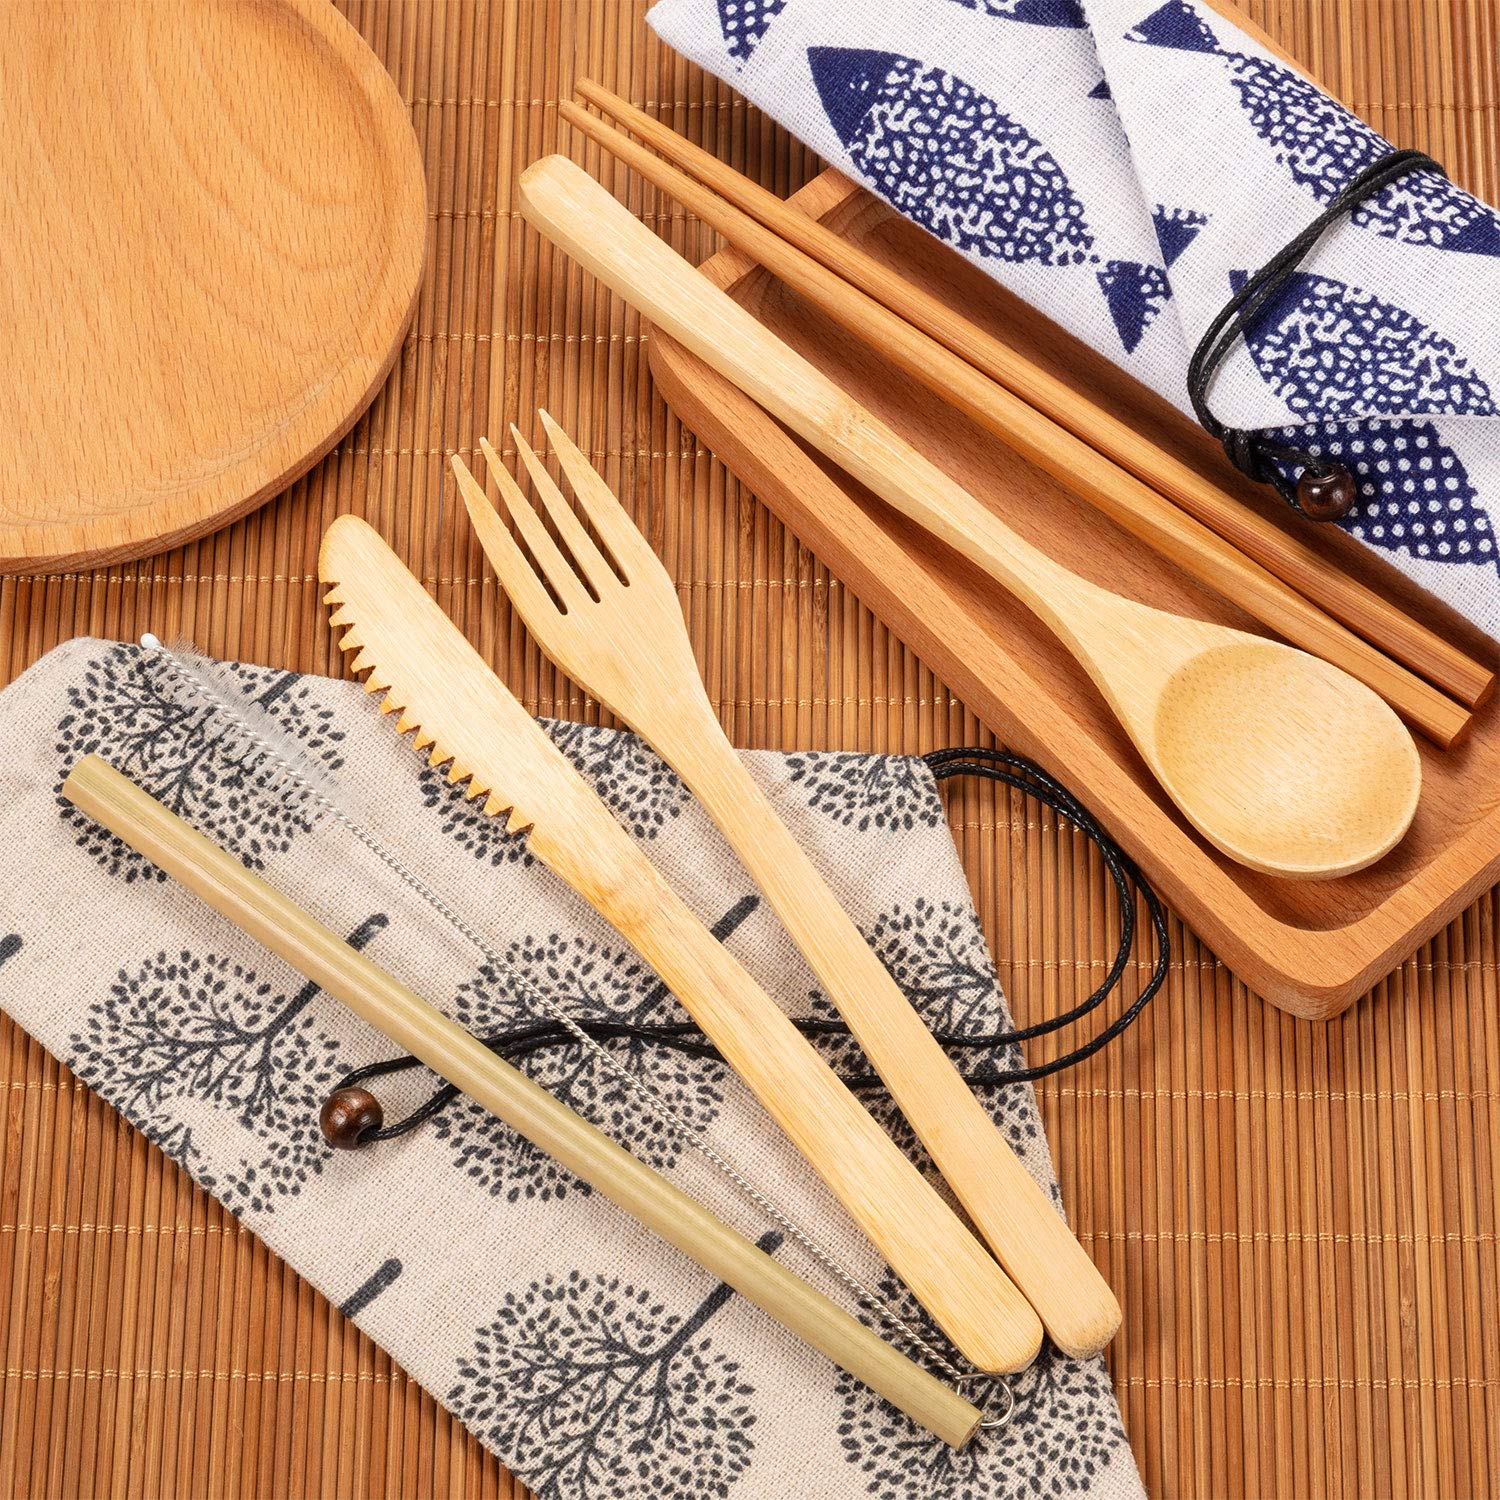 Bamboo Utensils Cutlery Set with Case